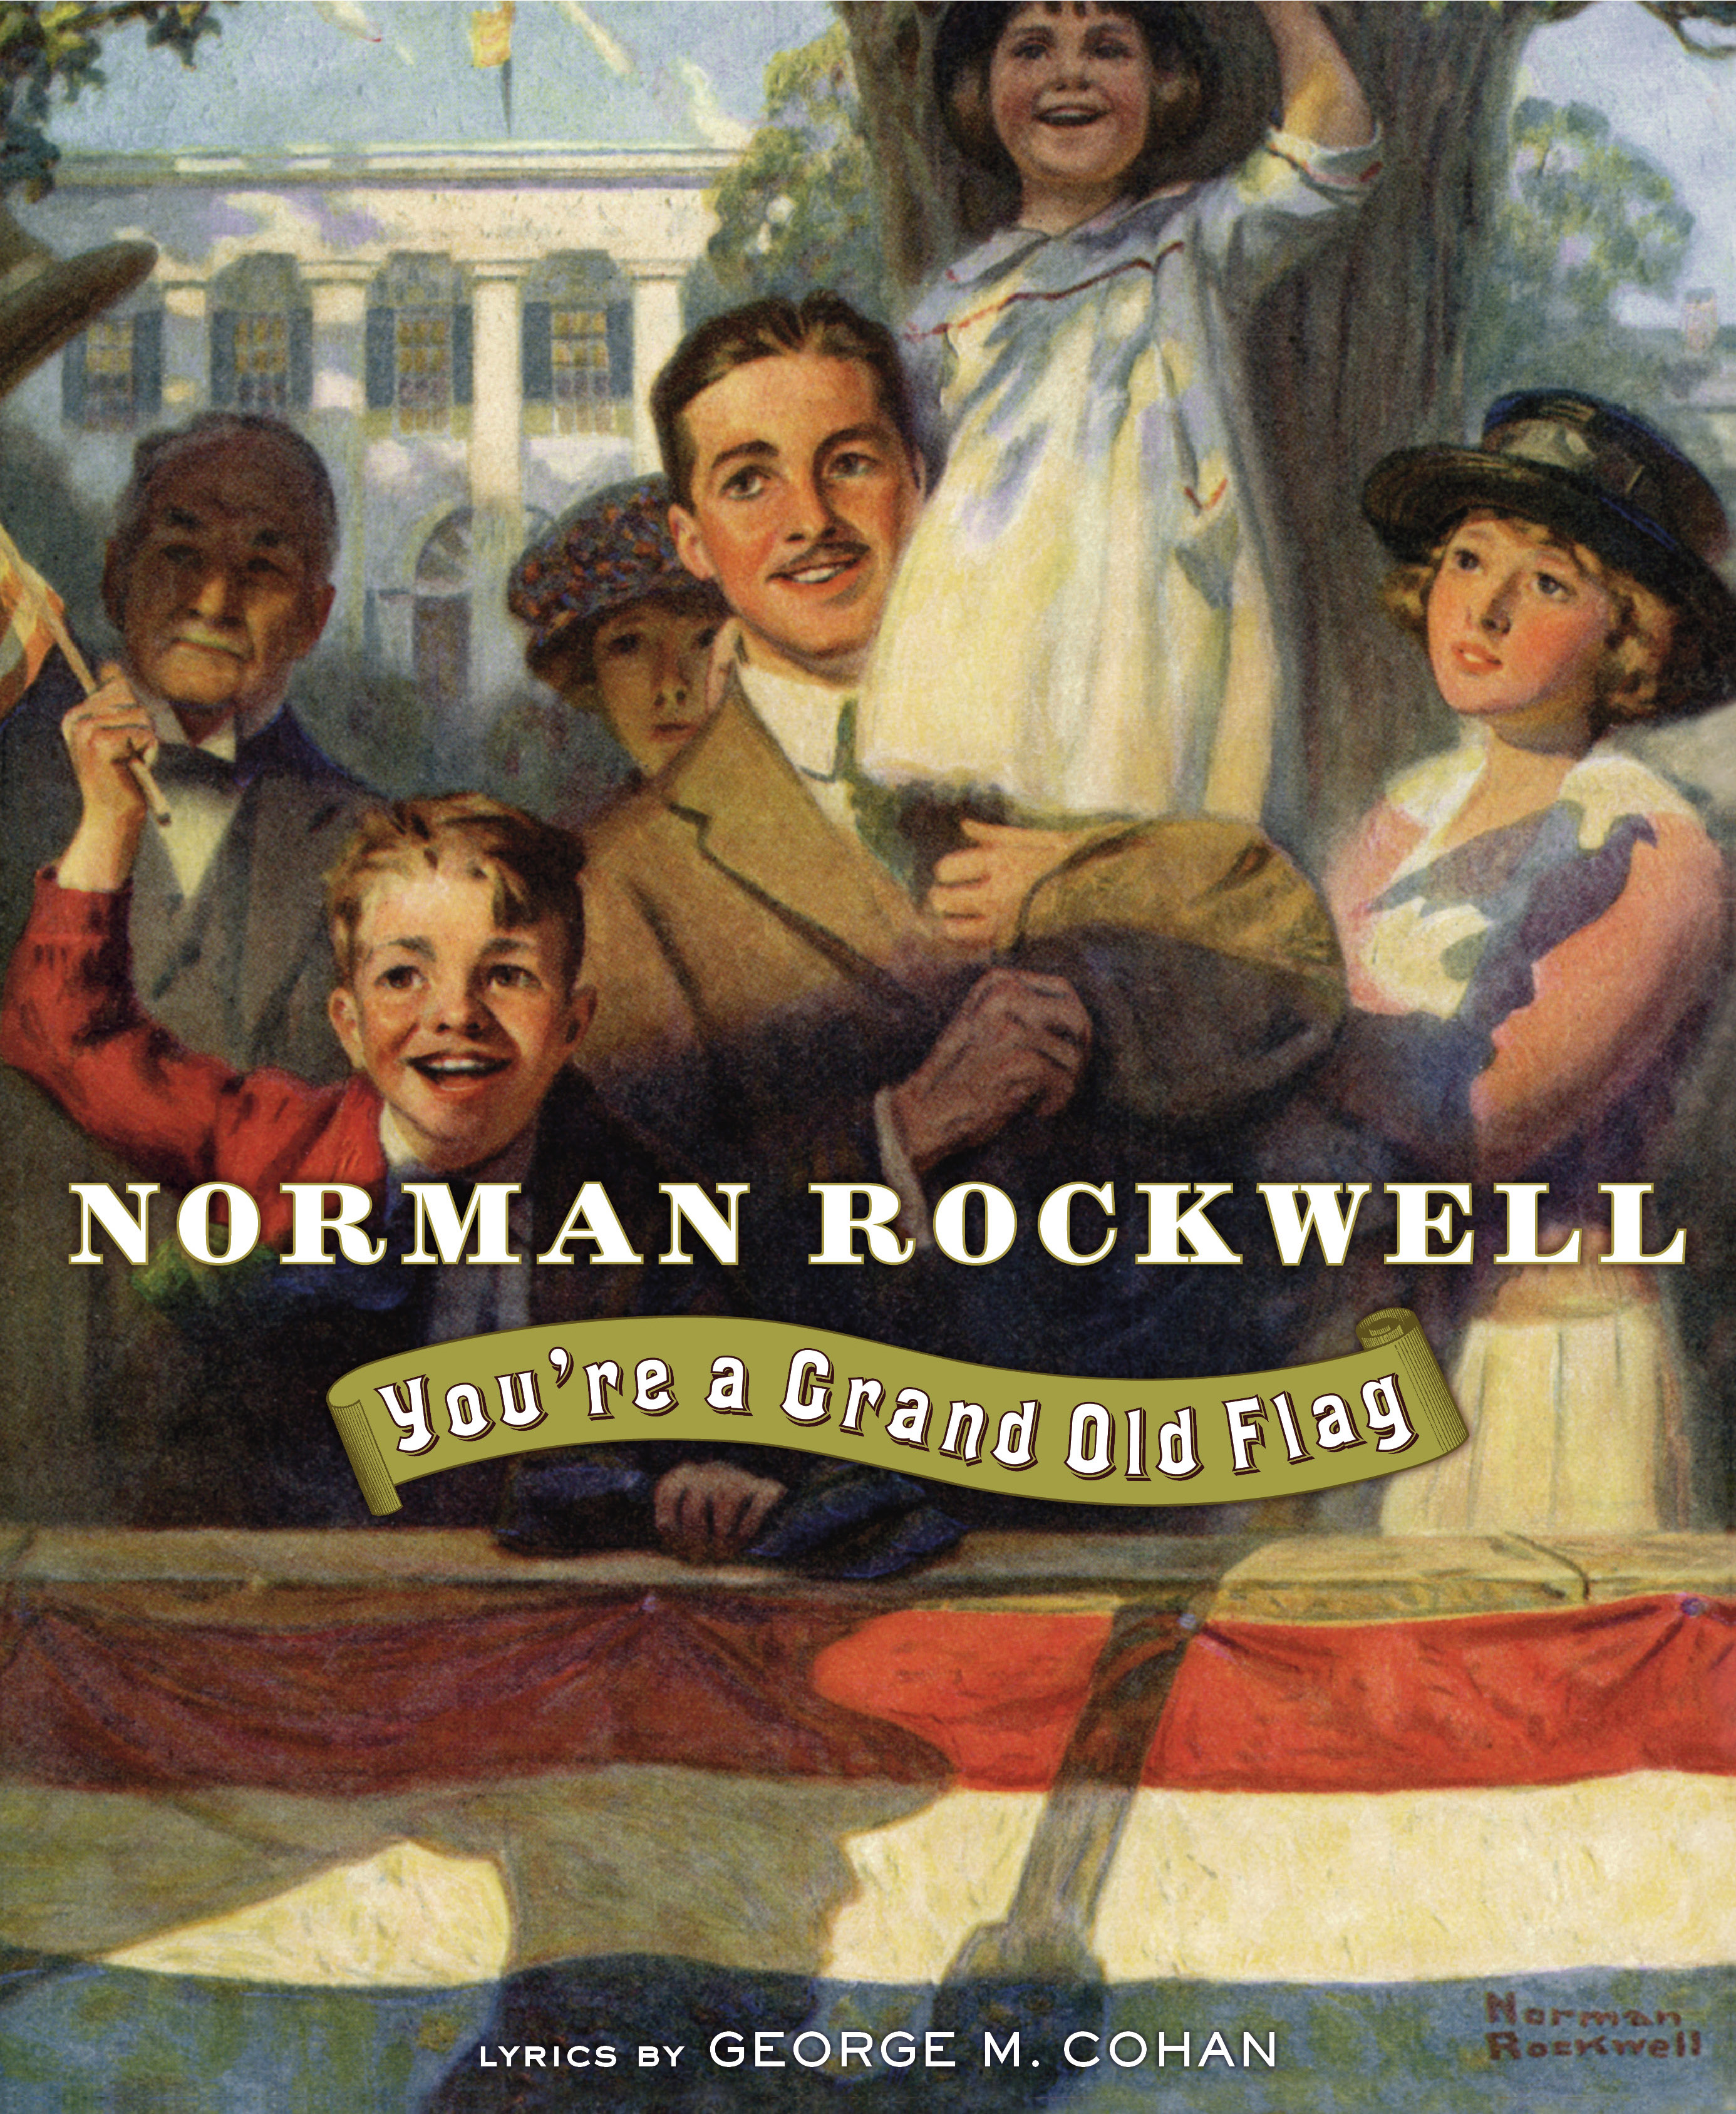 Image result for you're a grand old flag norman rockwell